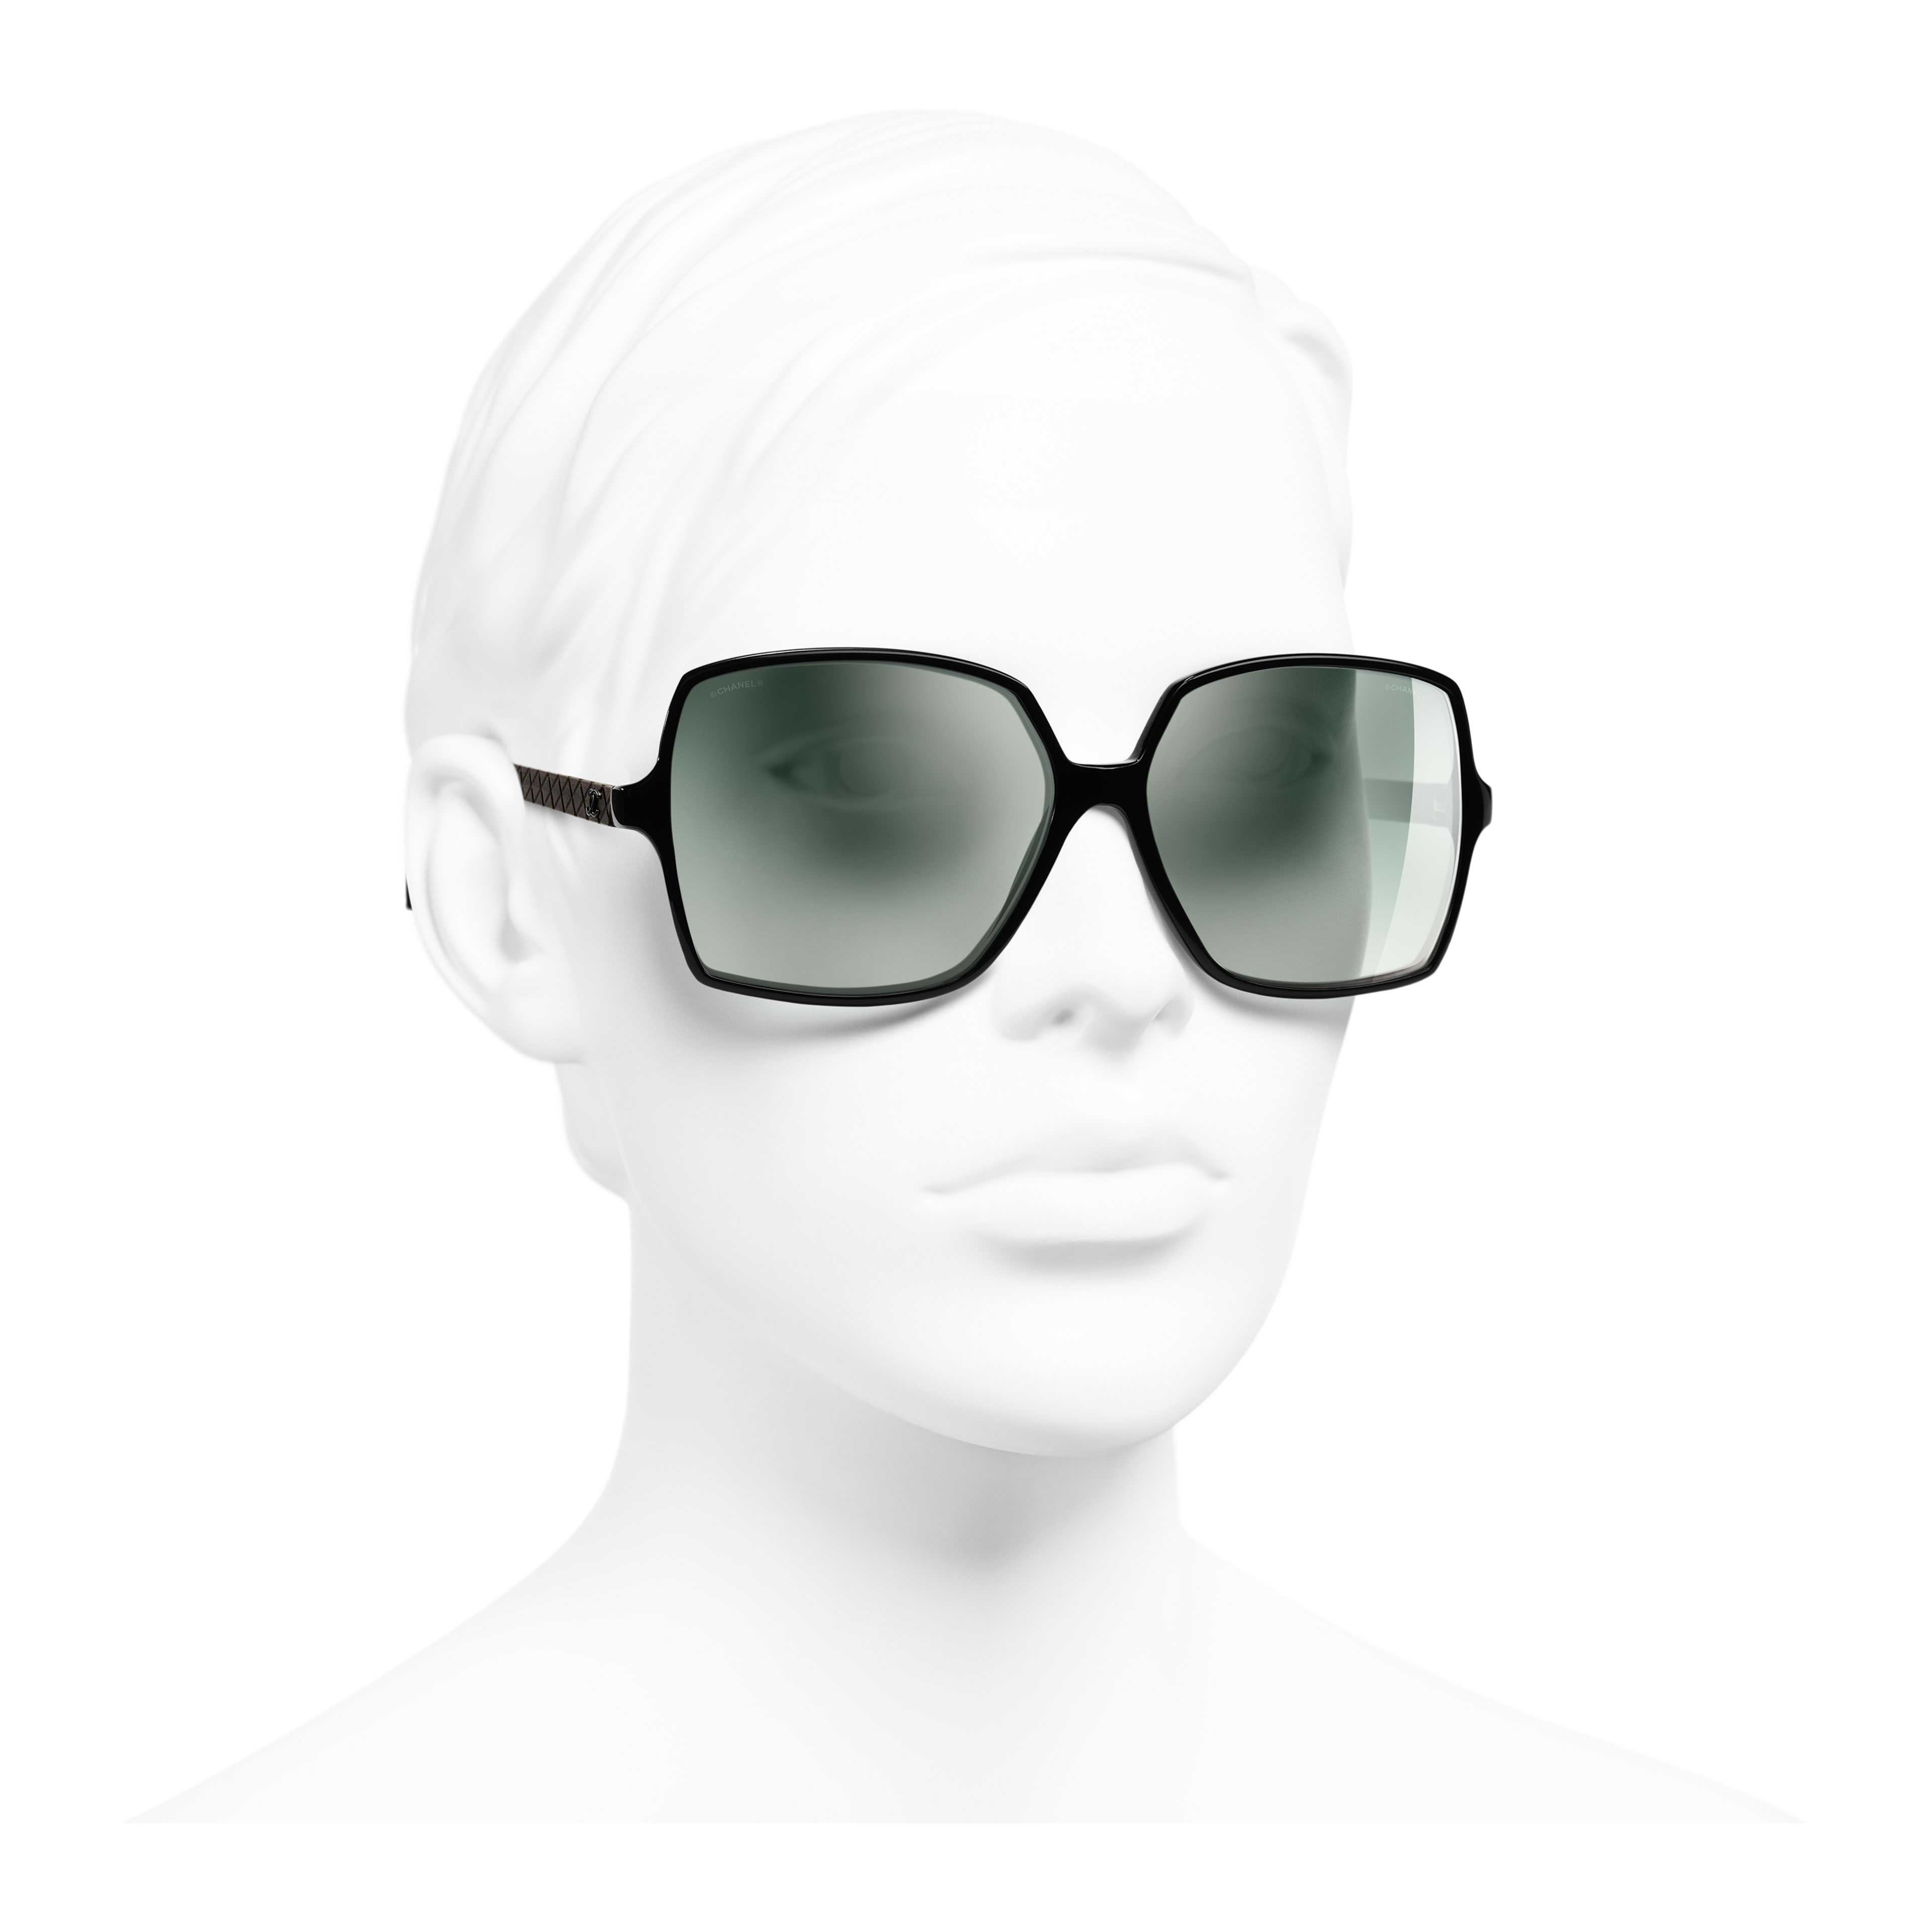 Square Sunglasses - Black - Acetate, Wood & Rubber - Worn 3/4 view - see full sized version